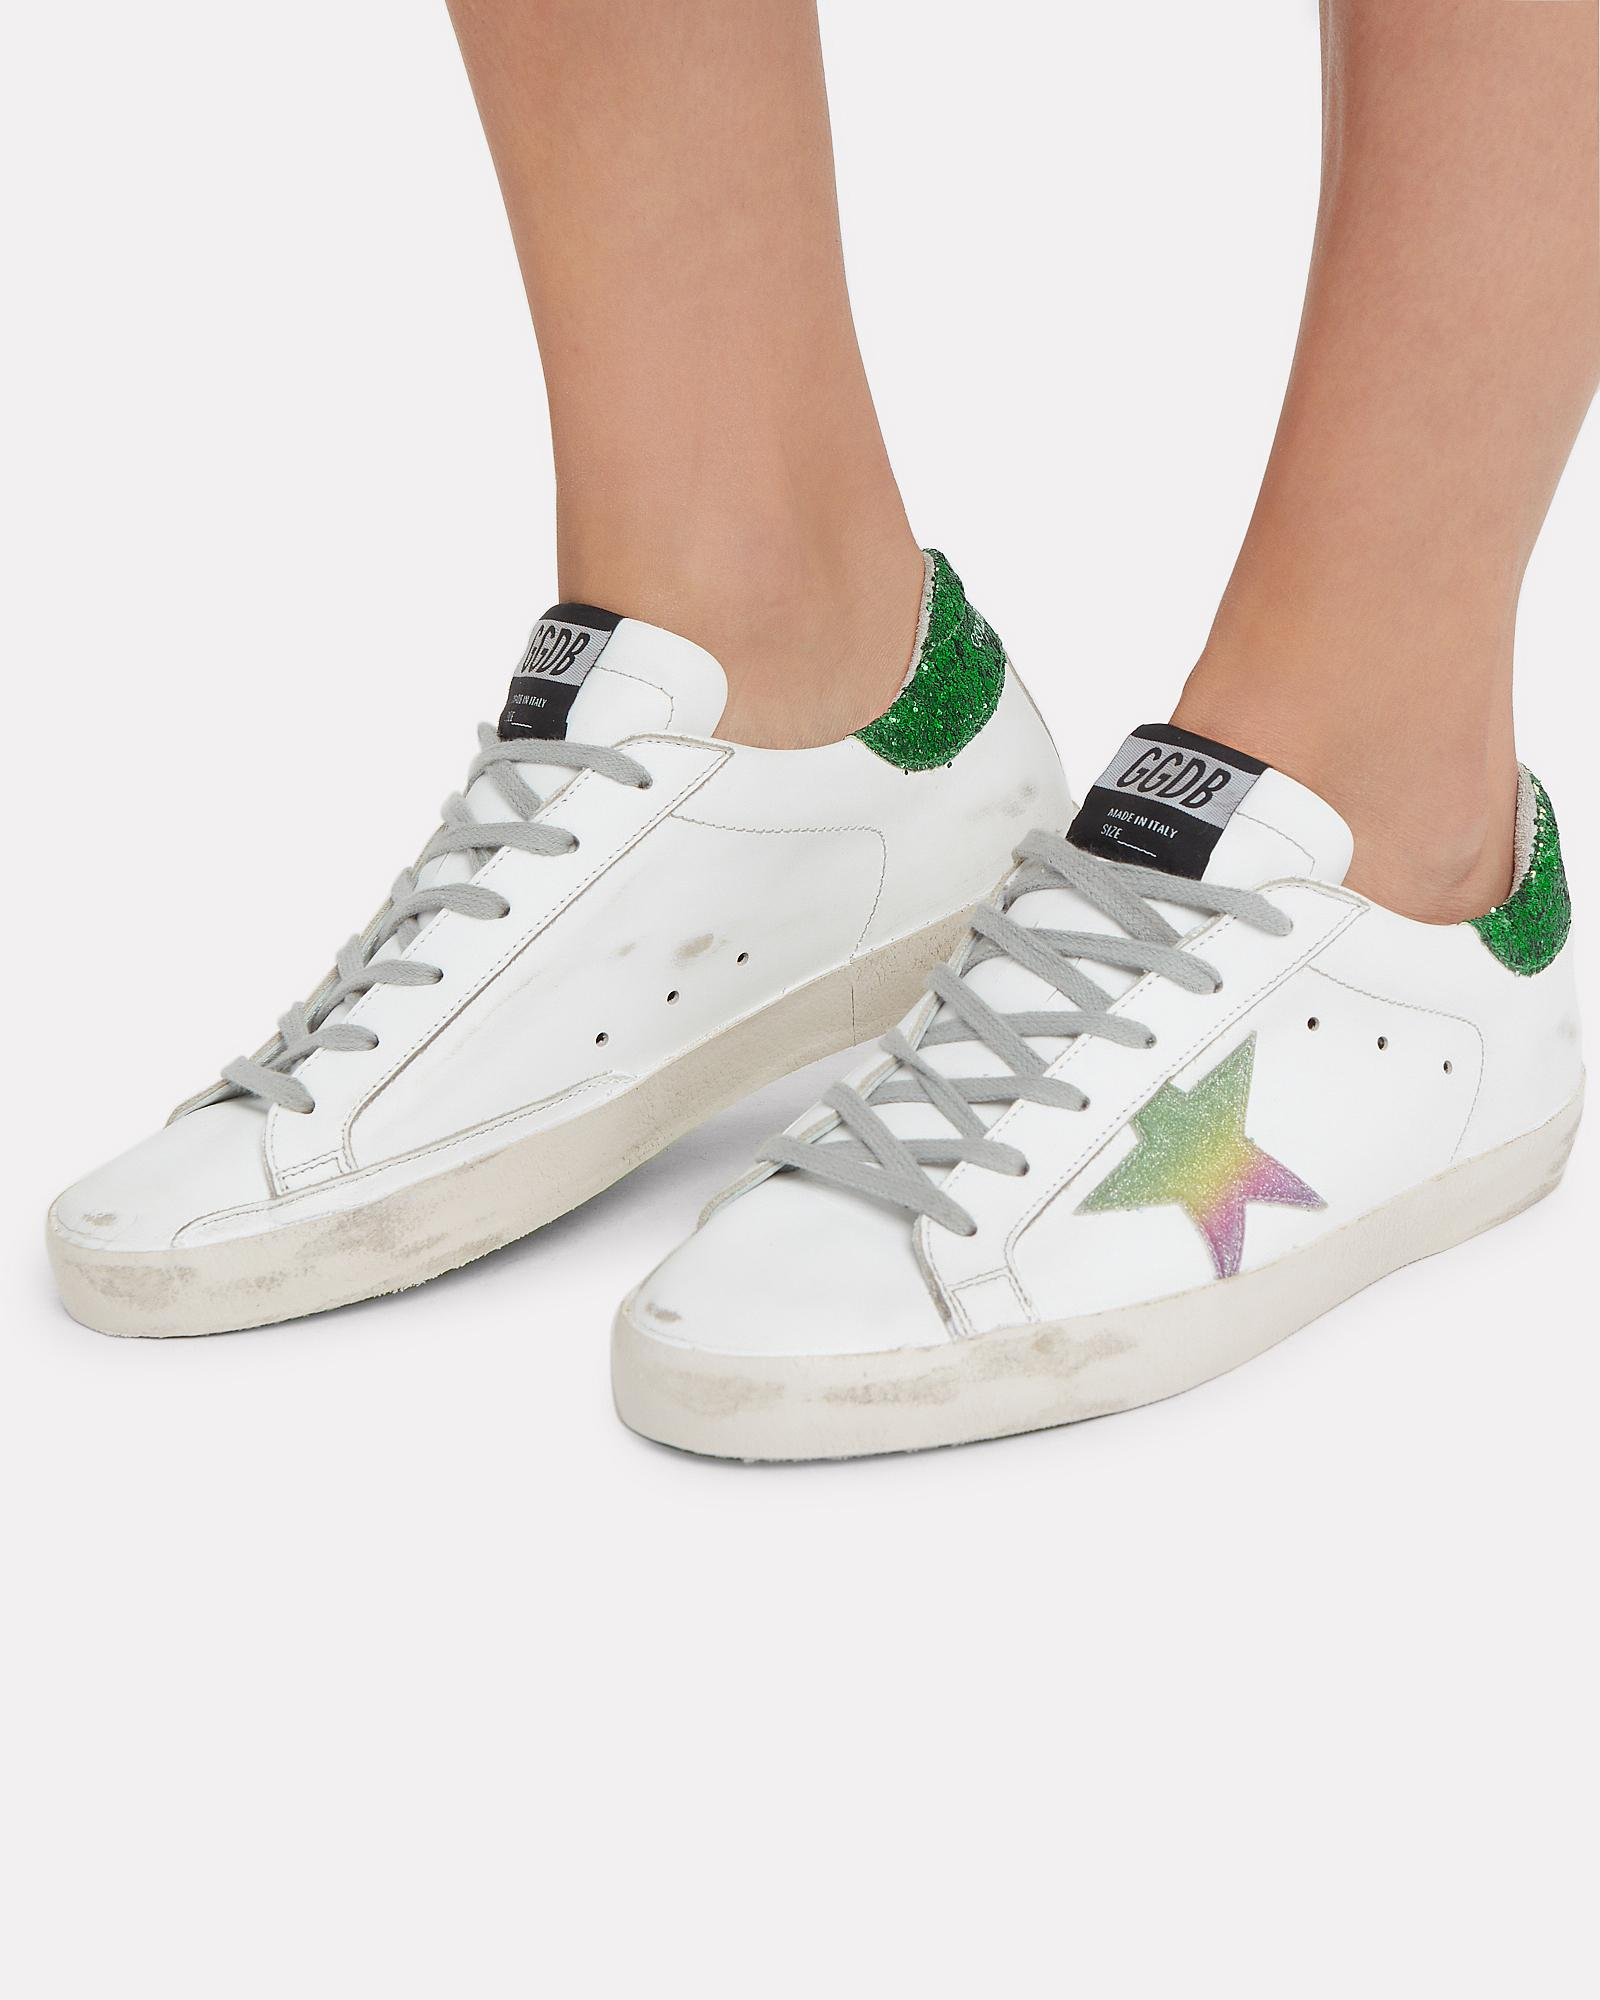 0b2446cb936 Lyst - Golden Goose Deluxe Brand Superstar Green Glitter Back Low-top  Sneakers in Green